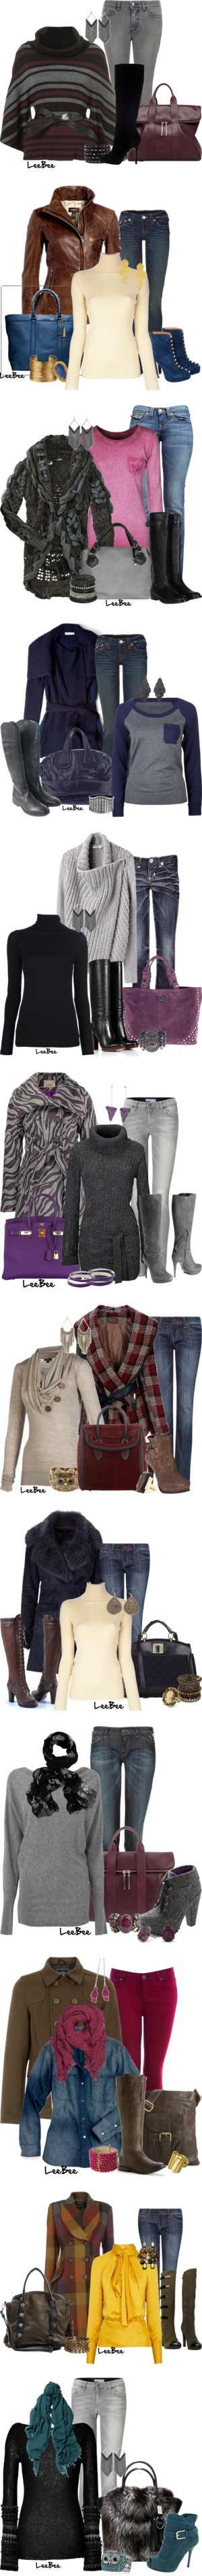 """Boots and Jeans"" by leebee11 ❤ liked on Polyvore"